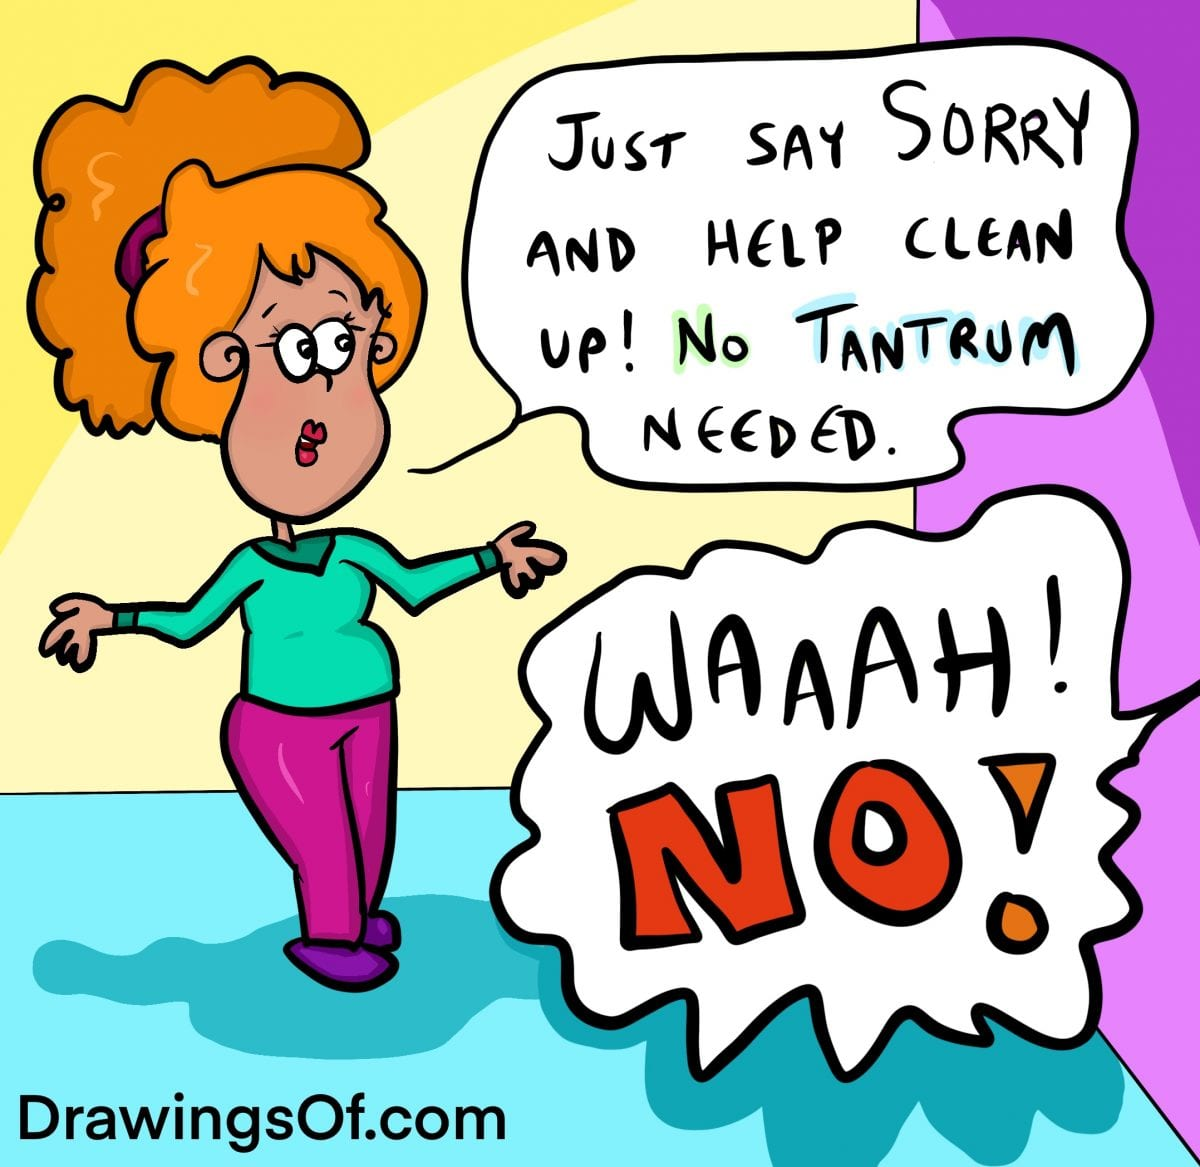 Cartoon mother gives advice on what a child should do after messing up, but child says no and has tantrum.